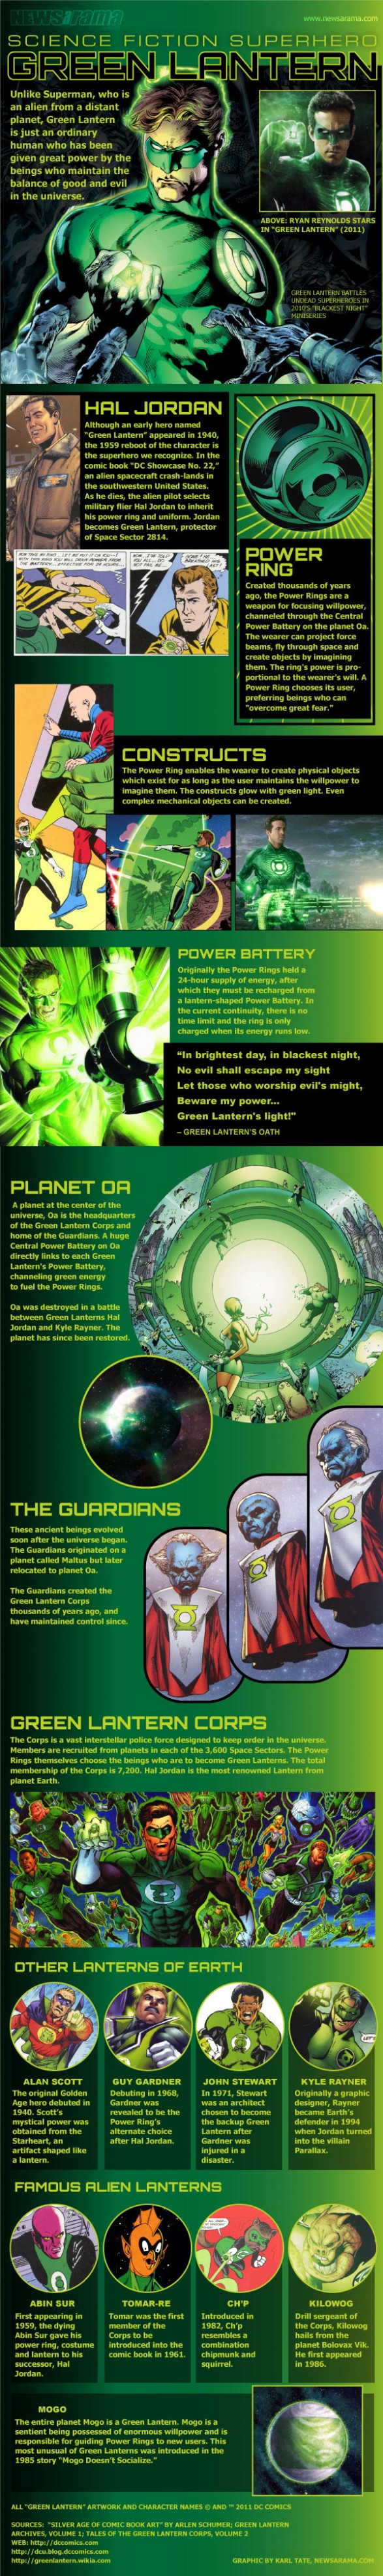 Science Fiction Superhero: Green Lantern